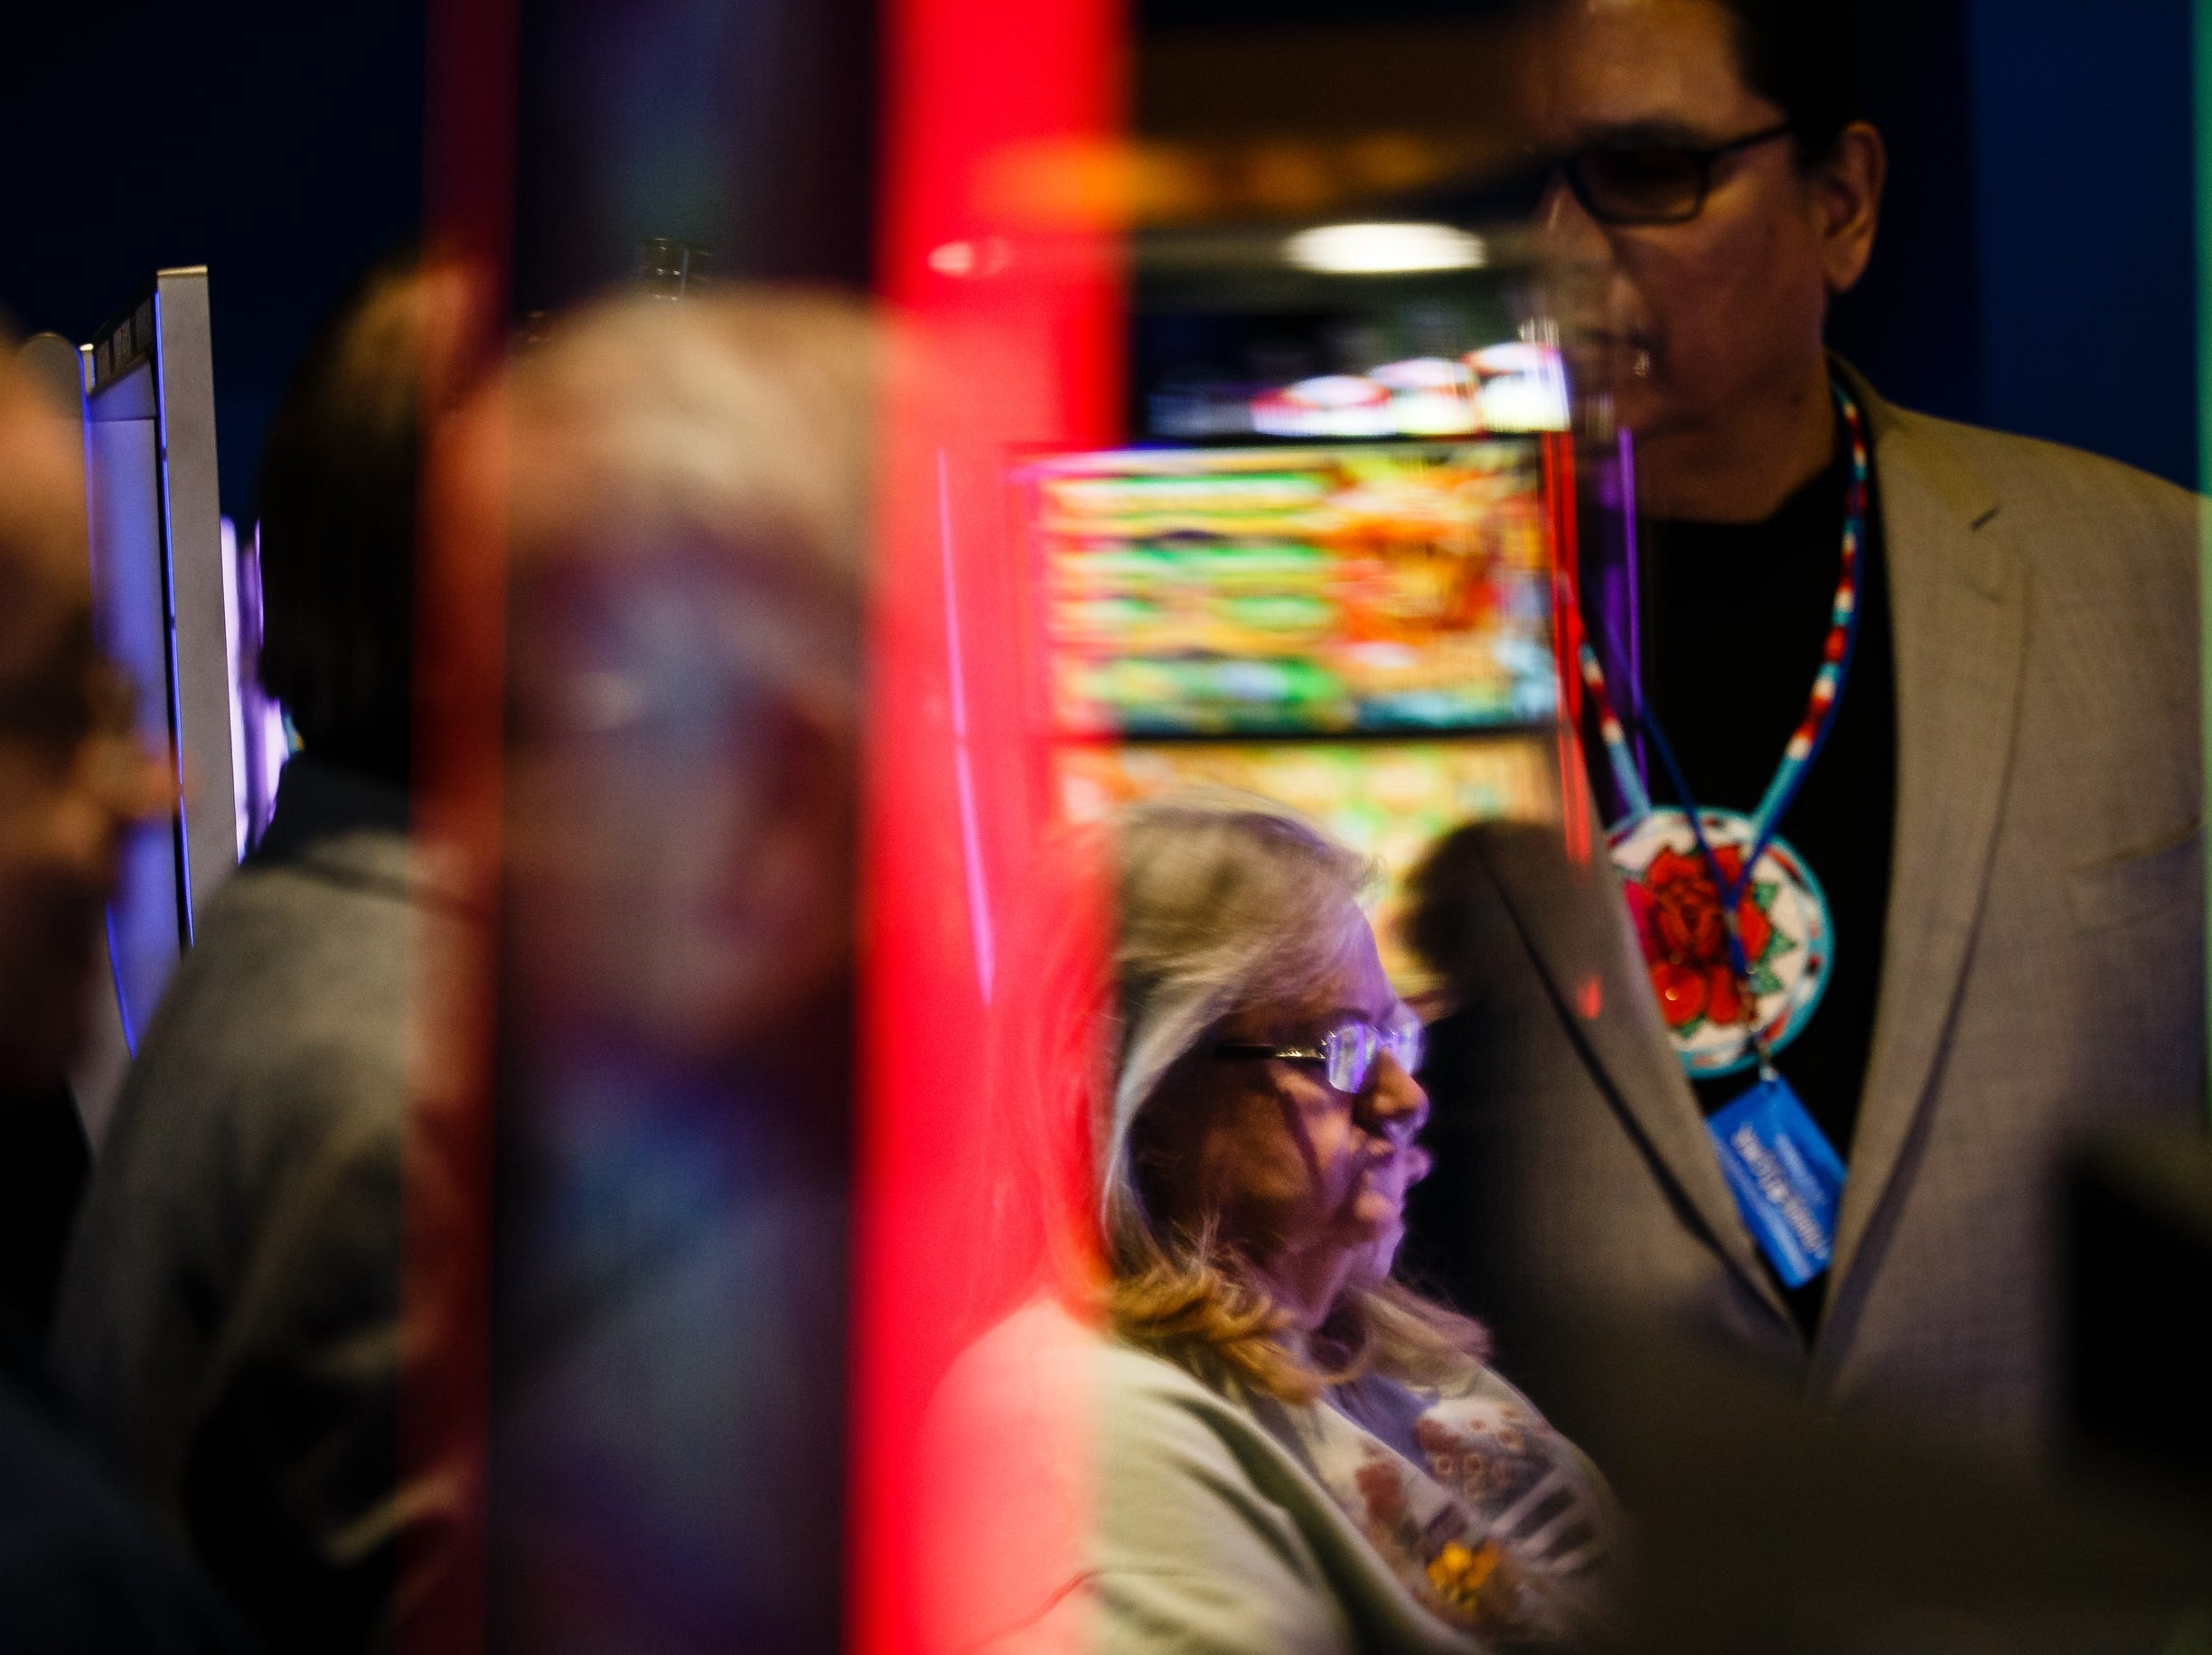 The first vistors gamble during the grand opening of The Ponca Tribe of Nebraska's Prairie Flower Casino on Thursday, Nov. 1, 2018, in Carter Lake. Both Iowa and Nebraska officials have tried to block the casino in federal court Ð Iowa because of competition with other Iowa casinos and Nebraska because the casino sits just miles away from Omaha where gambling is illegal.